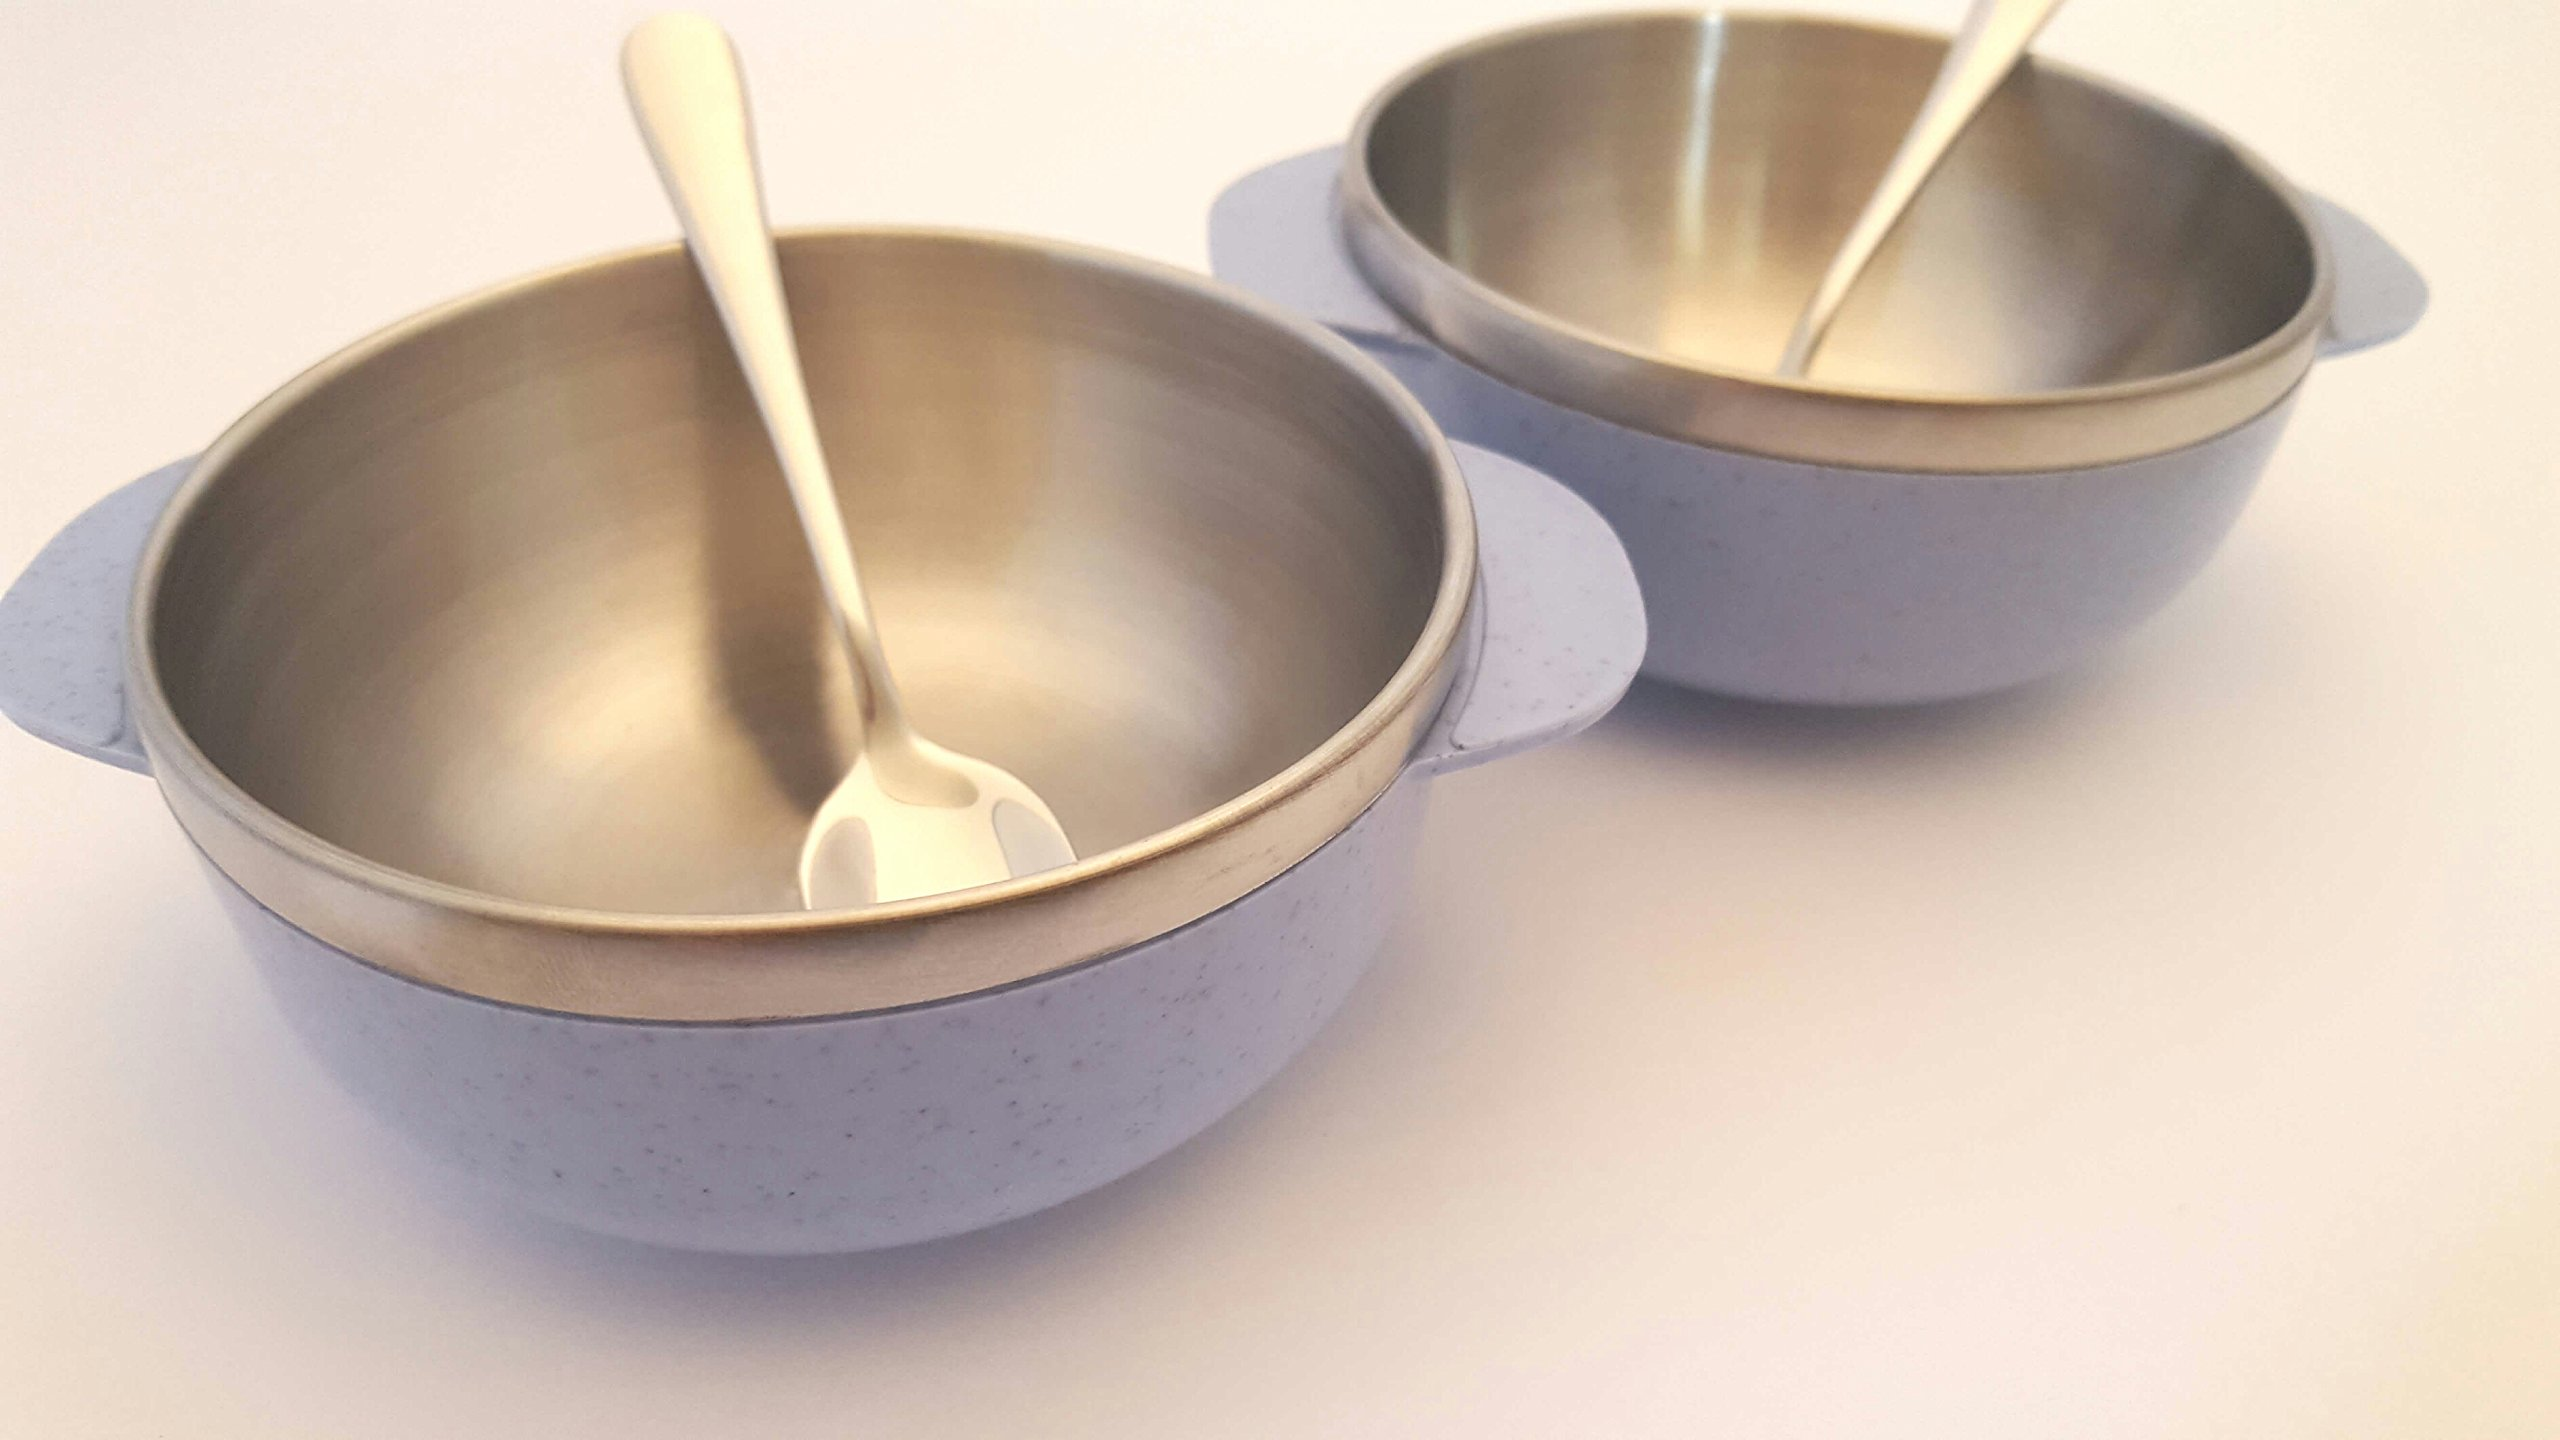 Dip Bowl Lightweight Stainless Steel for Sauces, Appetizers, Desserts, Rice, and Snacks, Set of 2 with Matching Spoons (Mist)